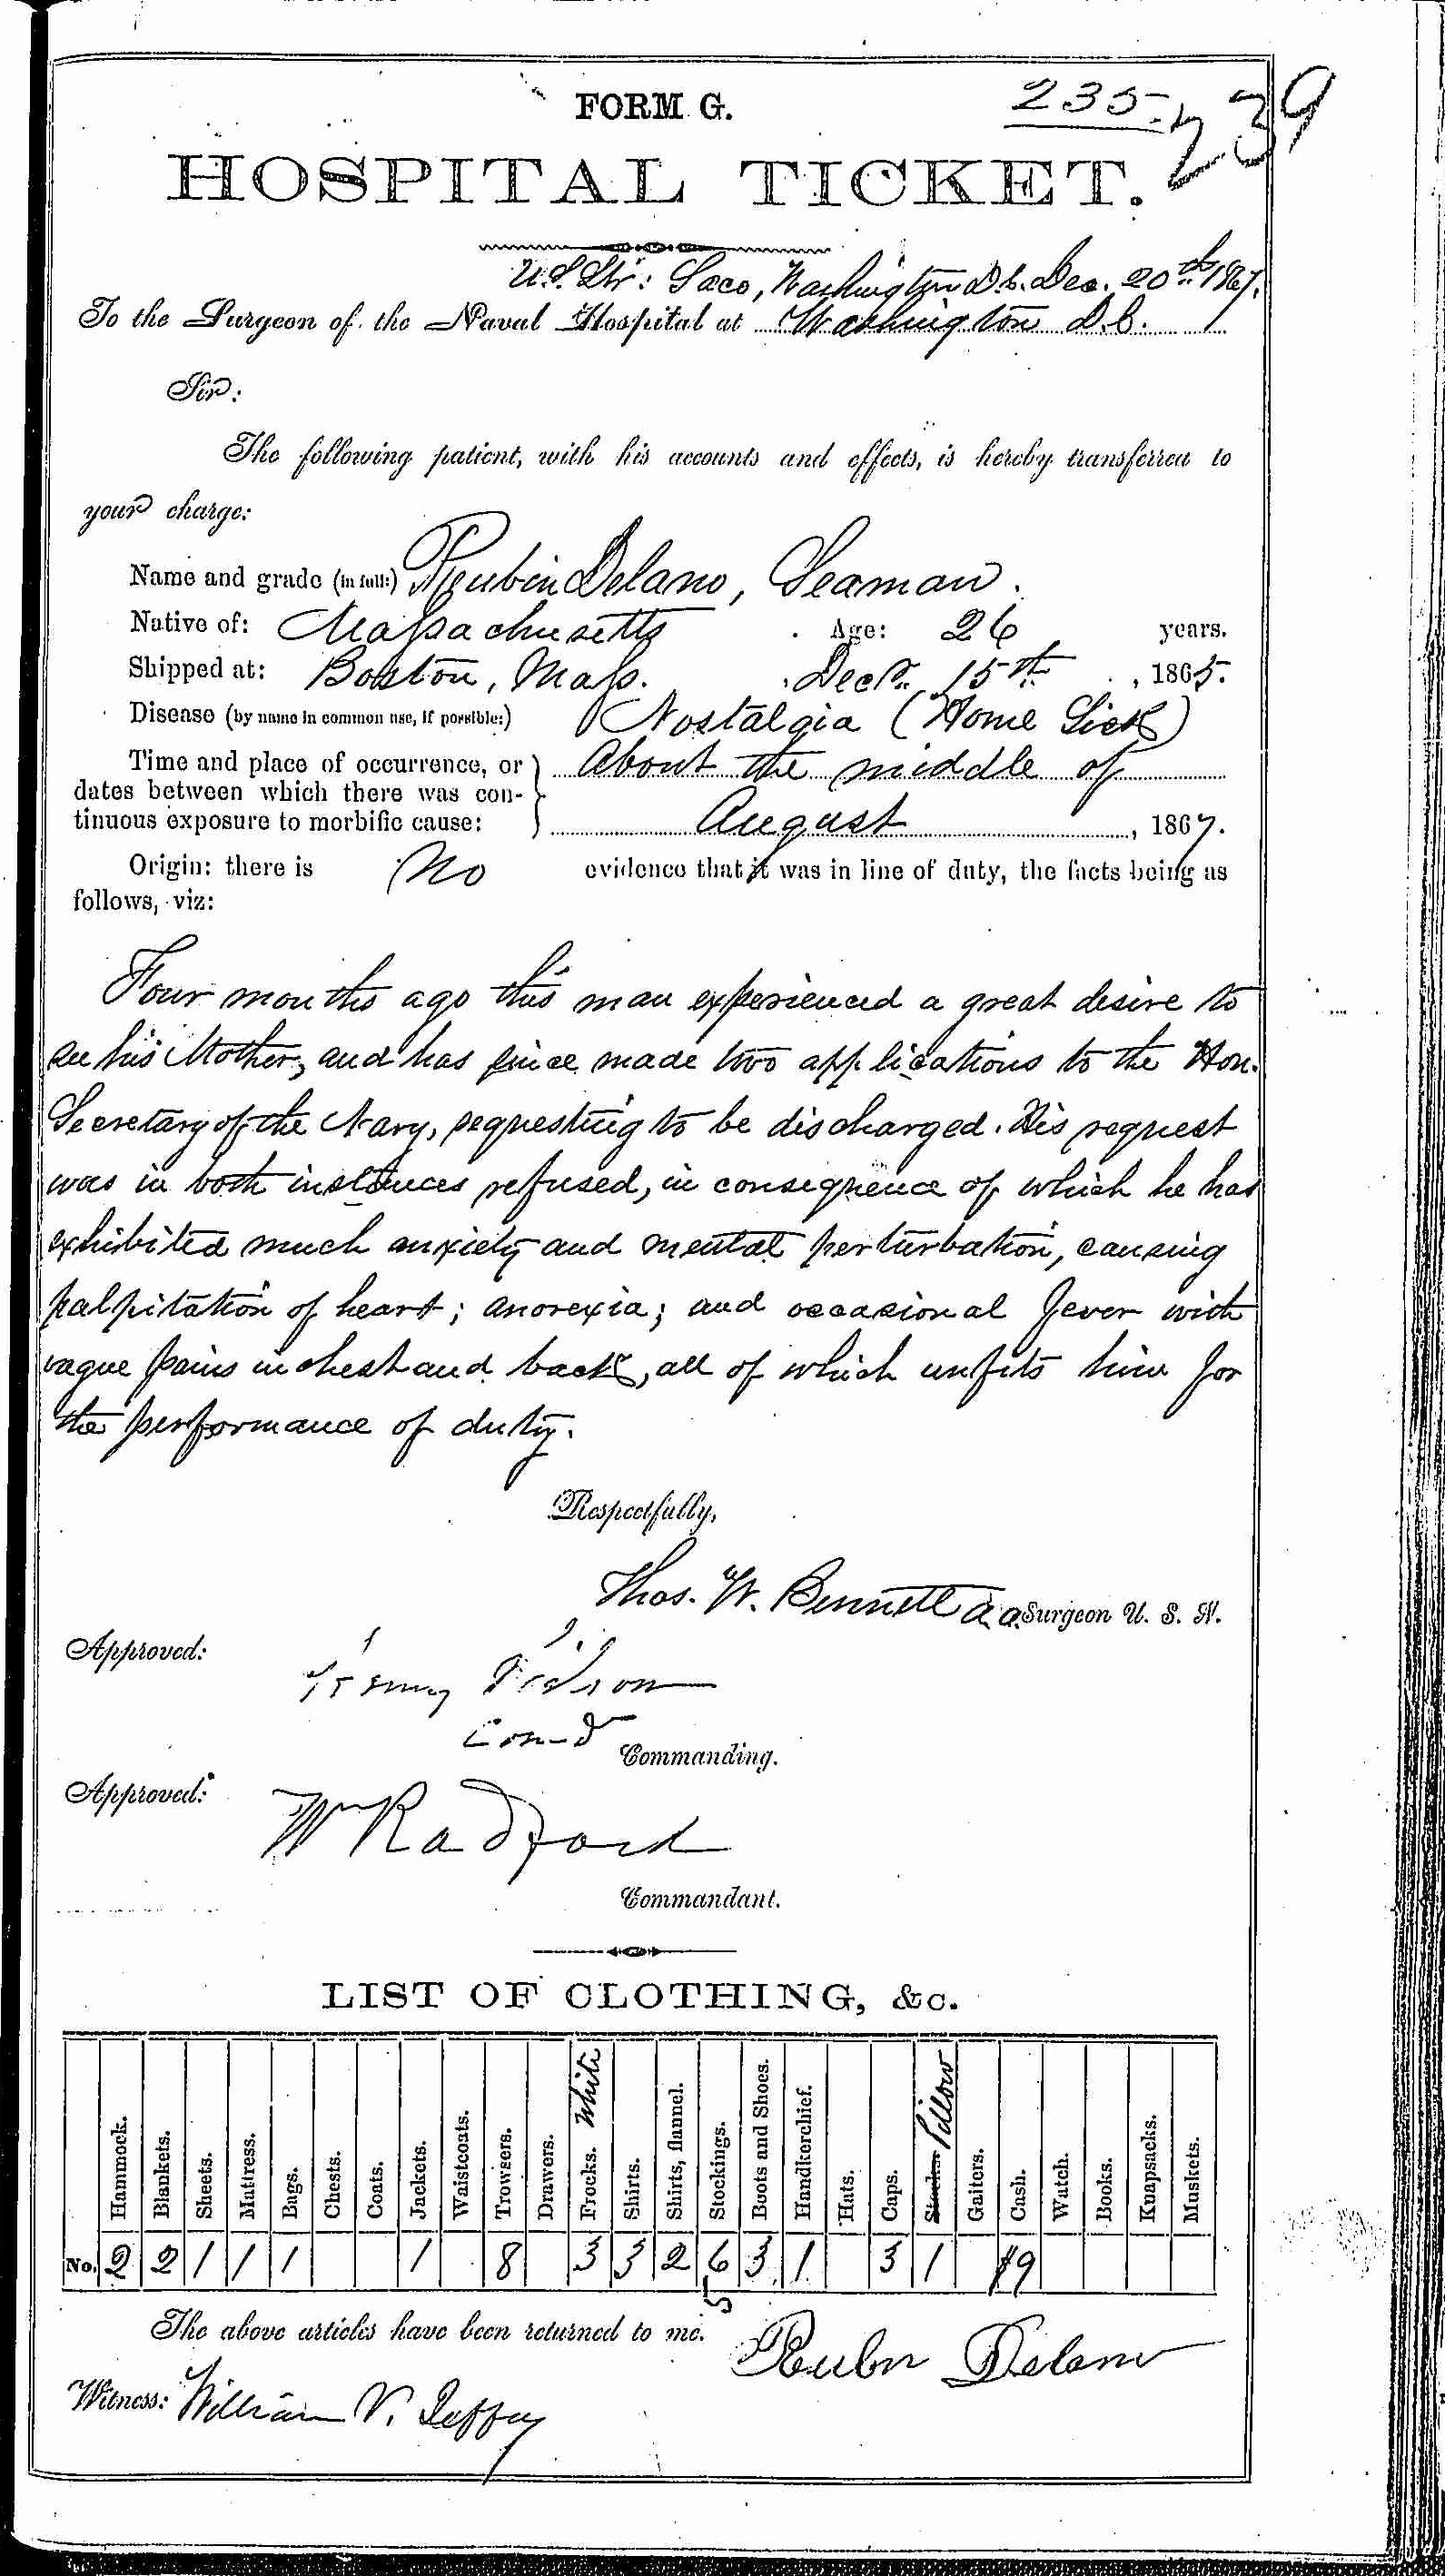 Entry for Reubin Delano (page 1 of 2) in the log Hospital Tickets and Case Papers - Naval Hospital - Washington, D.C. - 1866-68